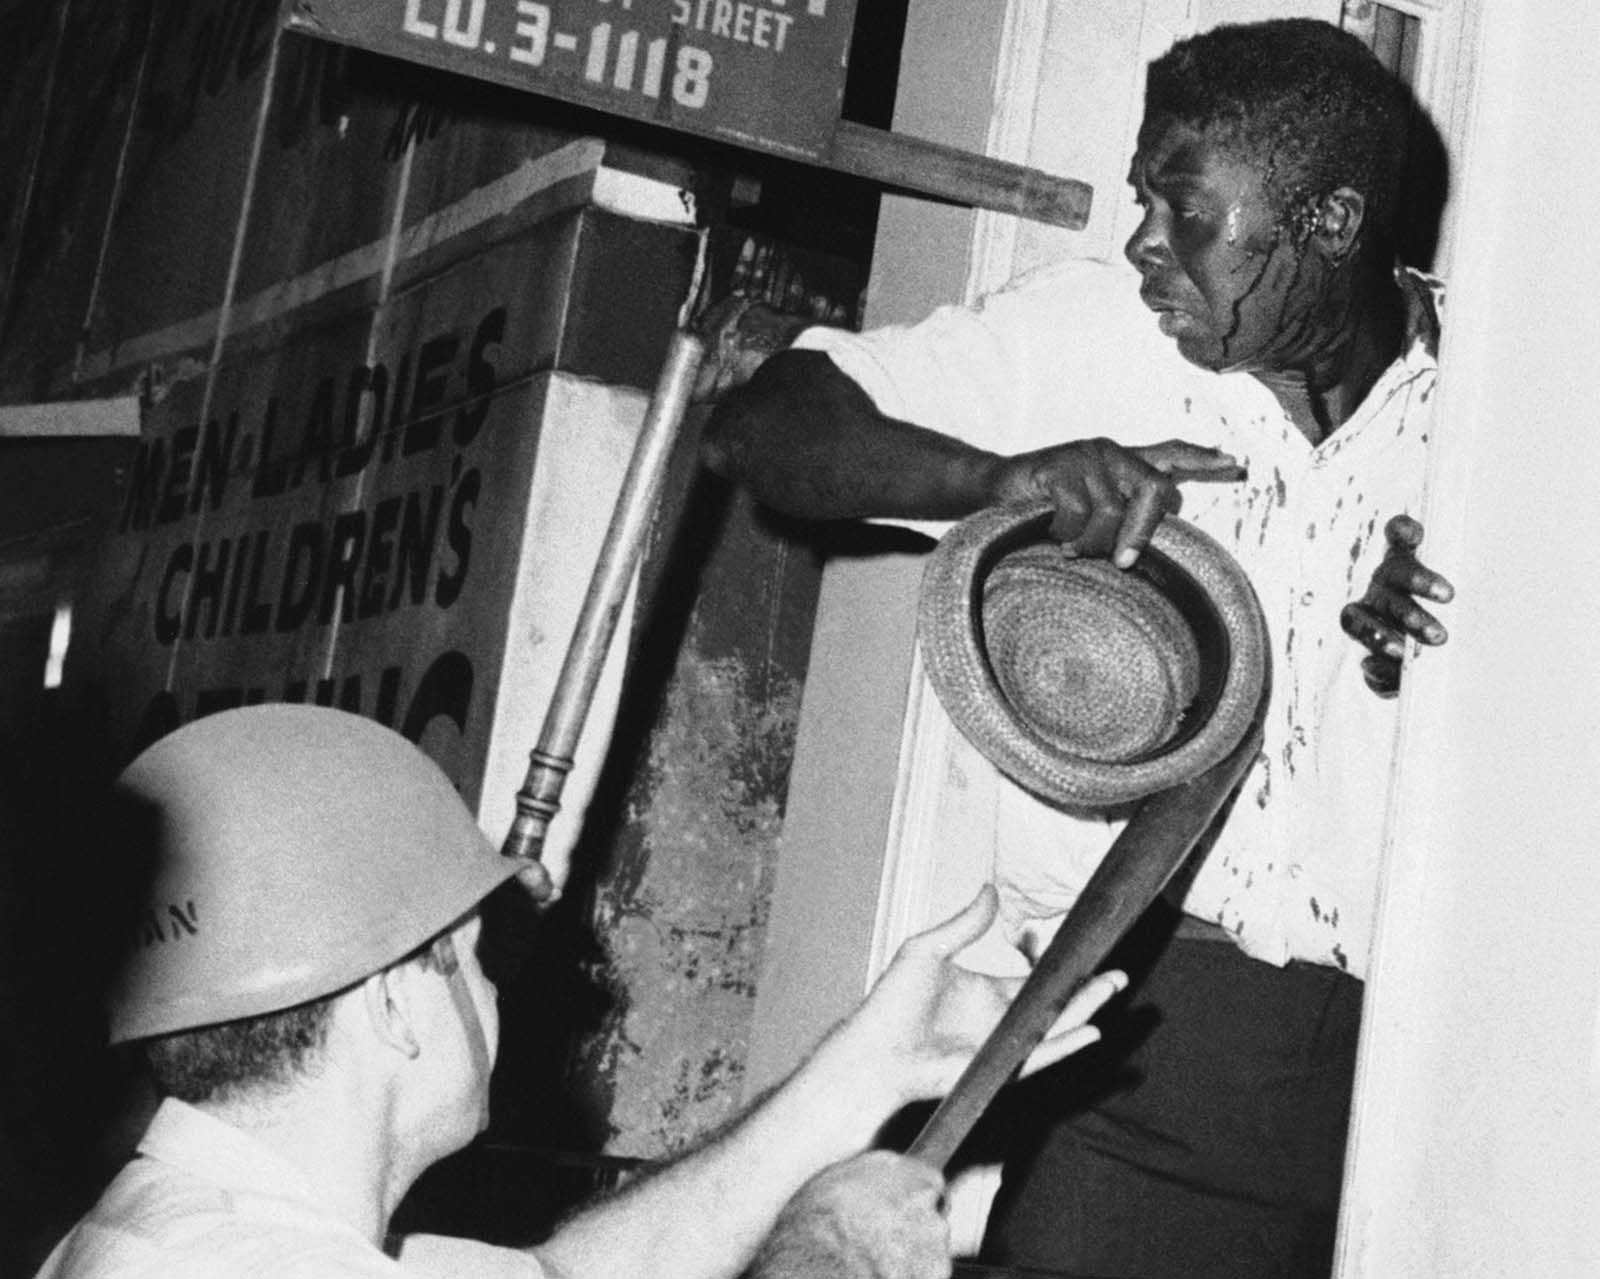 A man, his shirt stained by blood running down his face, is cornered in a doorway by club-wielding police early August 30, 1964 in North Philadelphia, Pennsylvania. The man had been clubbed for refusing to move along.